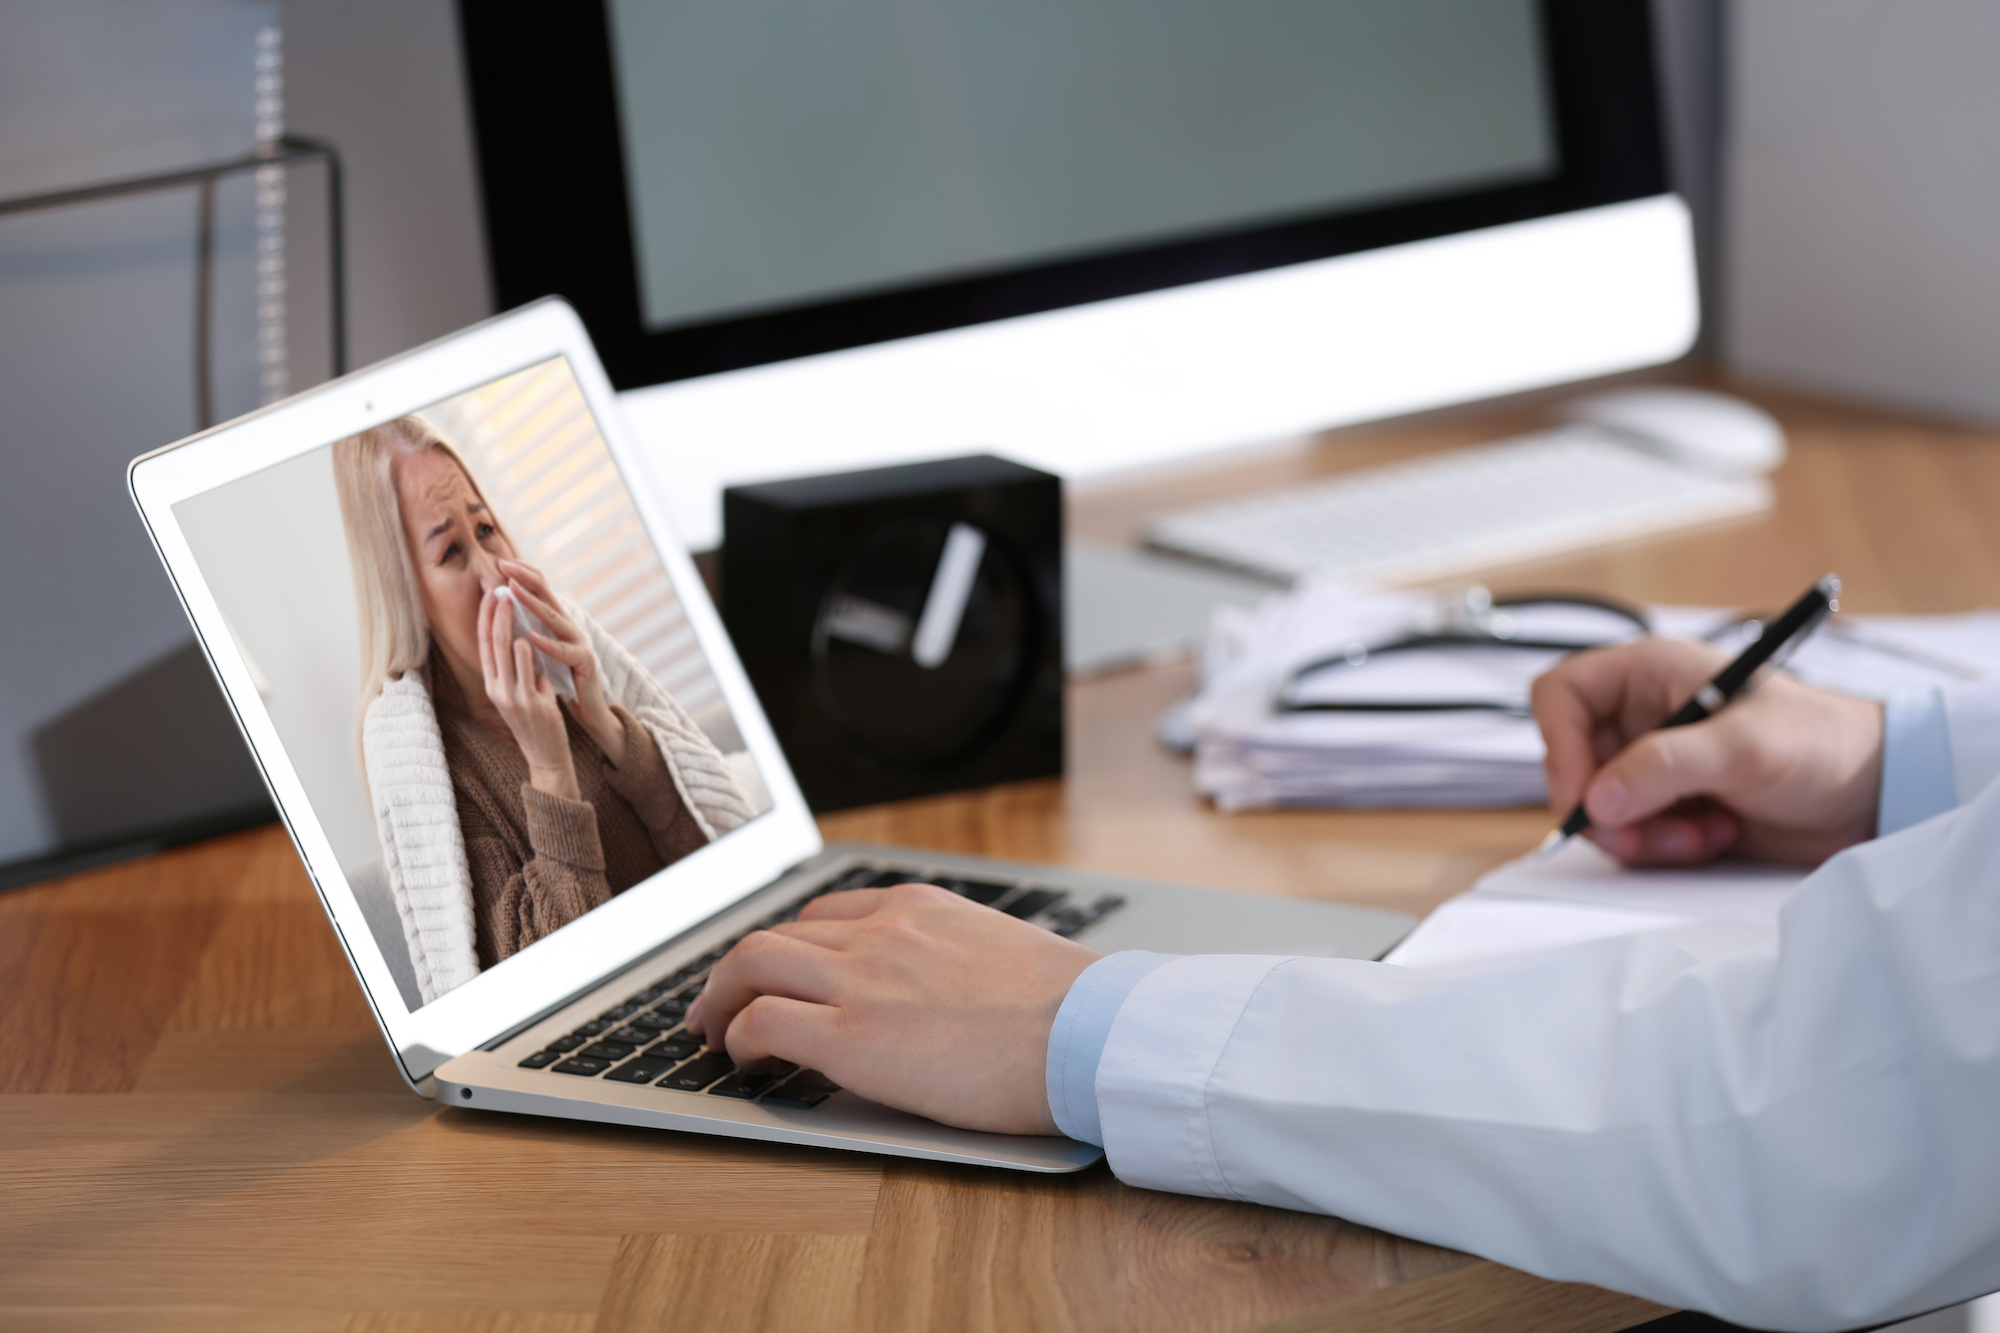 Doctor using proper netiquette for telehealth at laptop with a sick patient on the screen | Vanguard Communications | Denver, CO | San Jose, CA